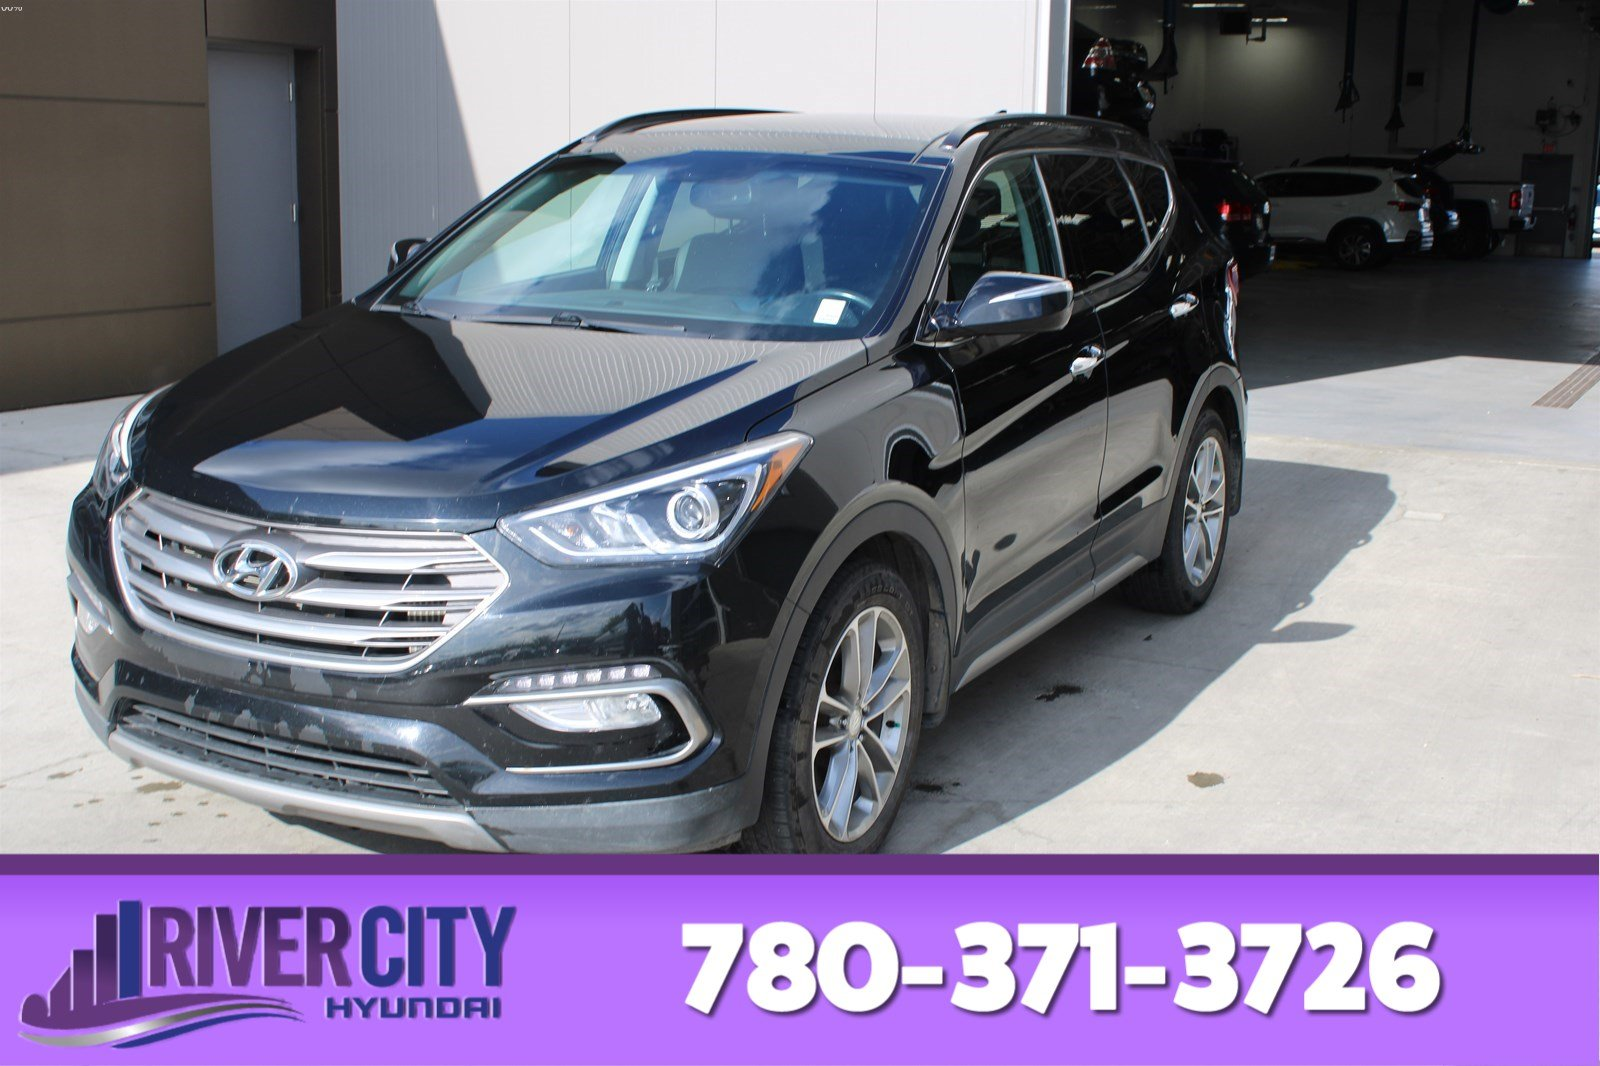 Certified Pre-Owned 2017 Hyundai Santa Fe Sport AWD LIMITED Navigation (GPS), Heated Seats, Panoramic Roof, Back-up Cam, Bluetooth, A/C,